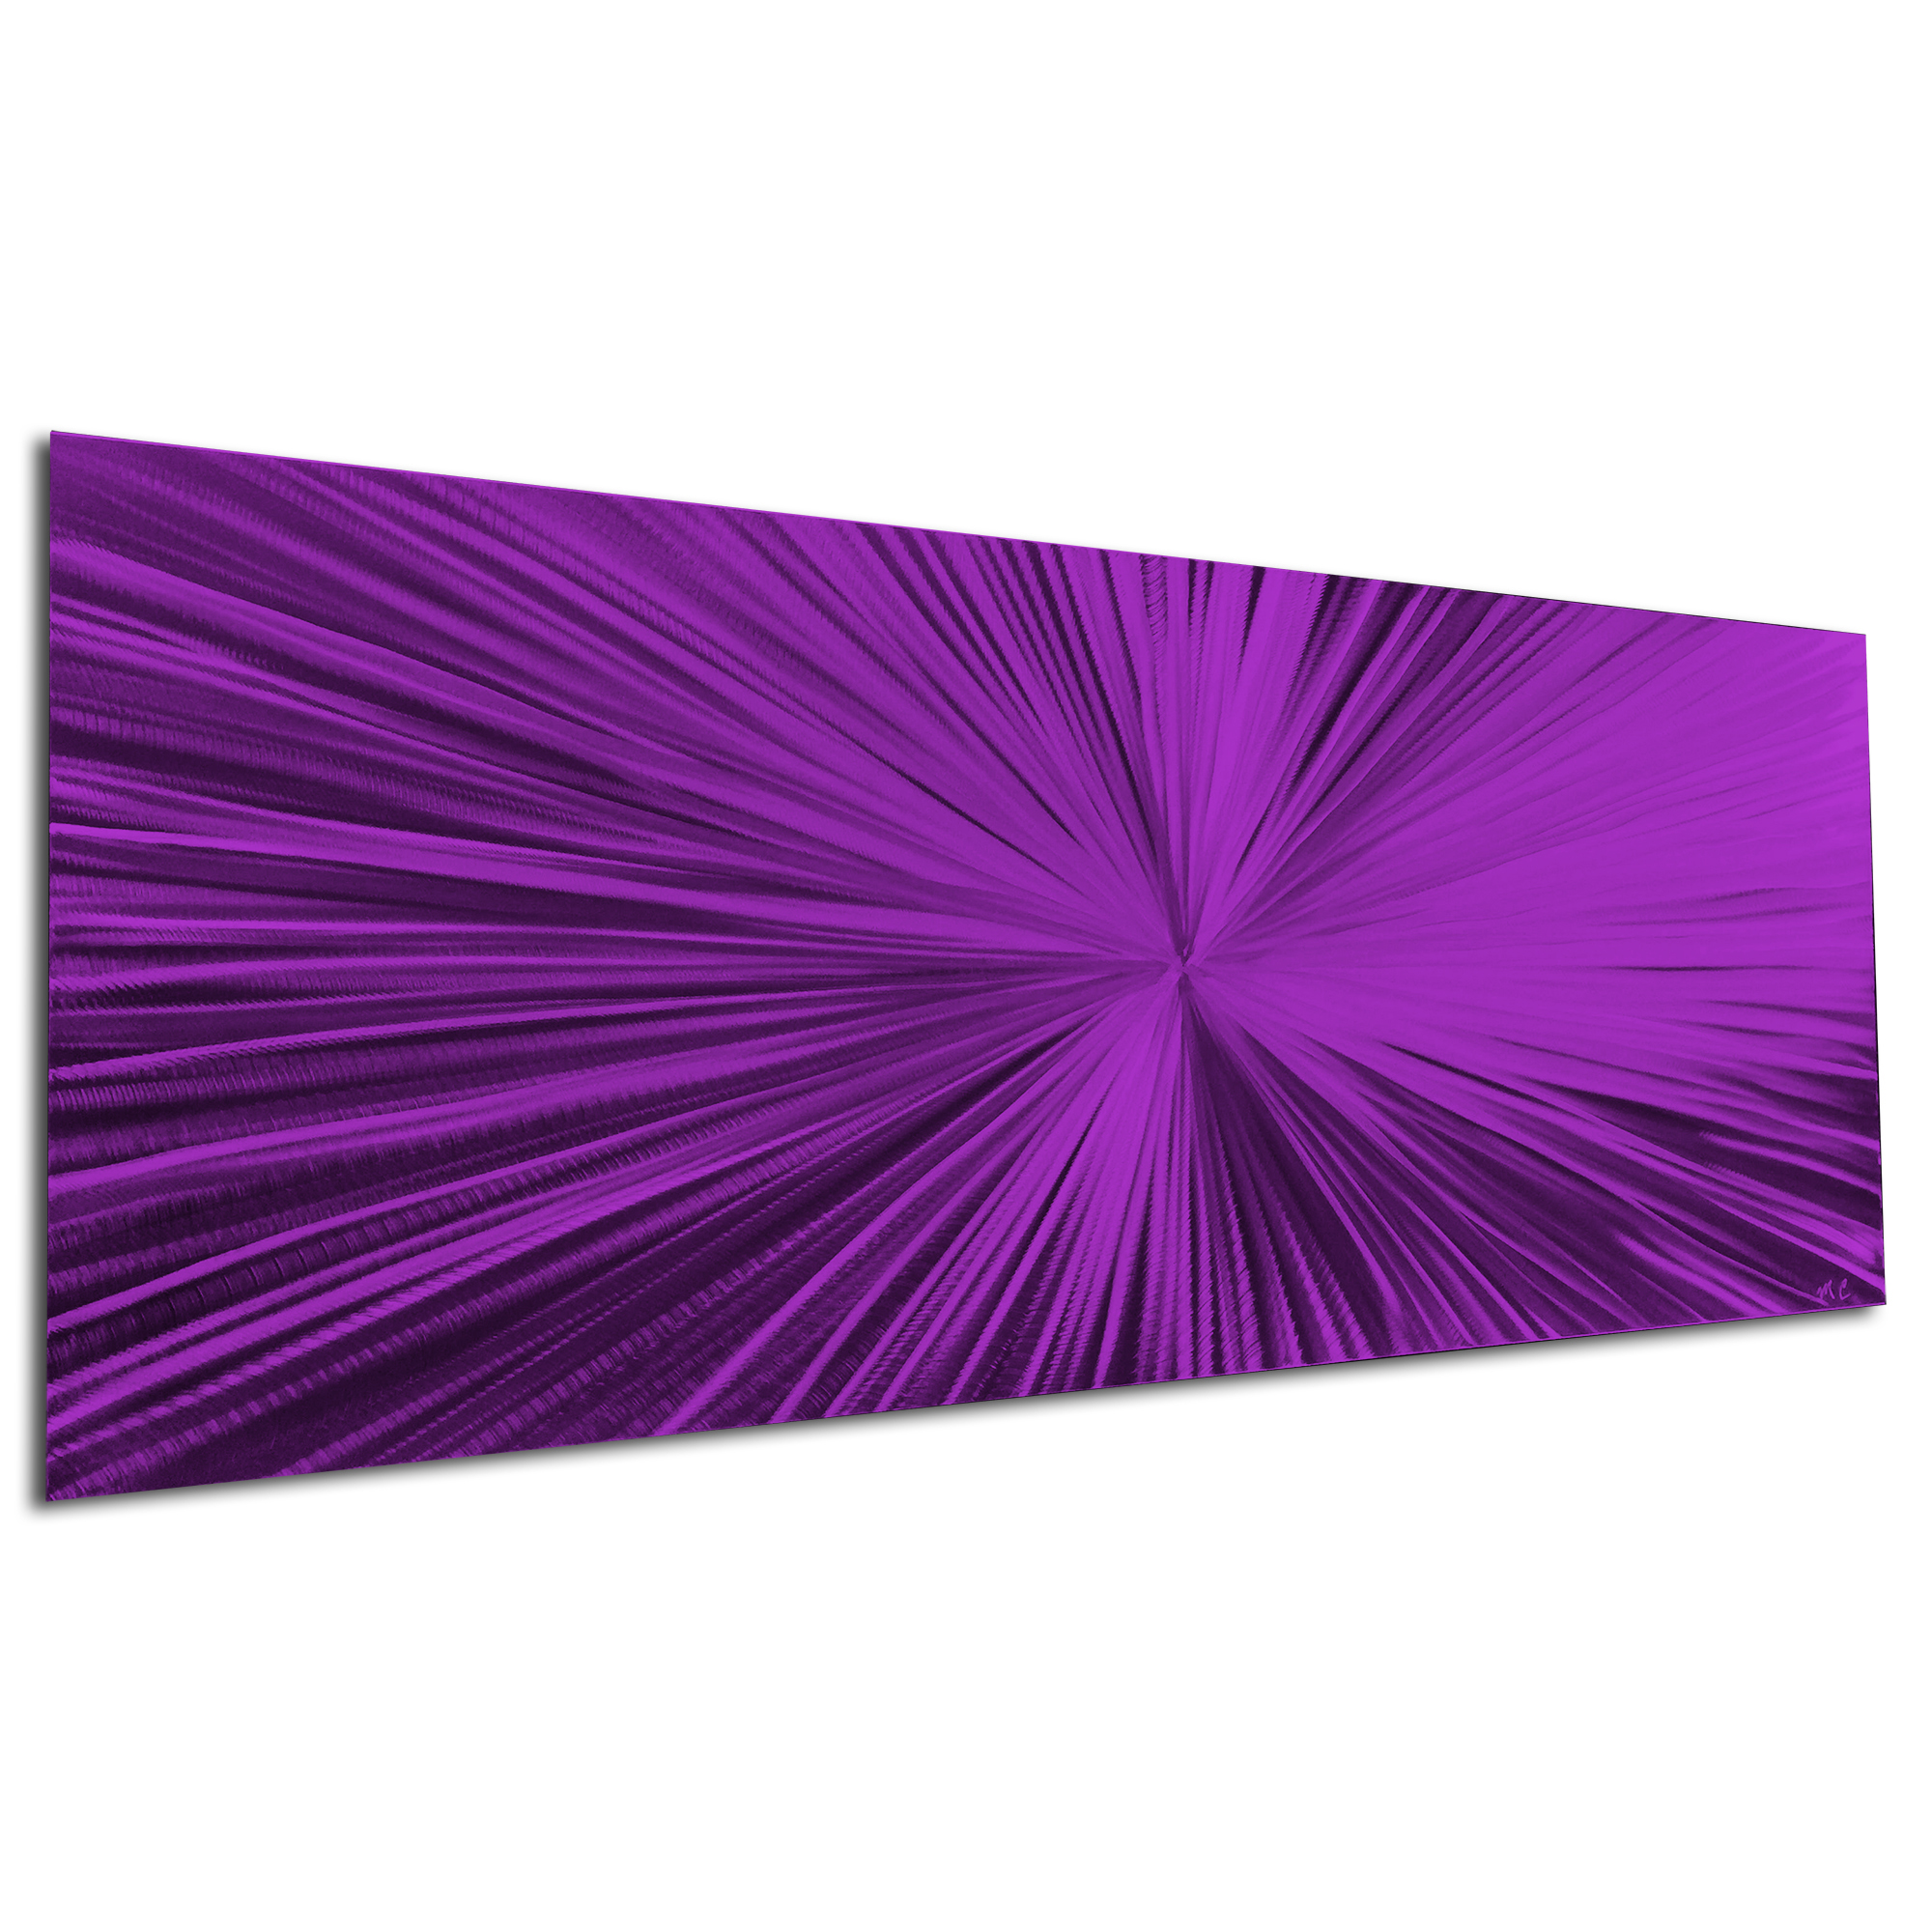 Starburst Purple by Helena Martin - Original Abstract Art on Ground and Painted Metal - Image 3